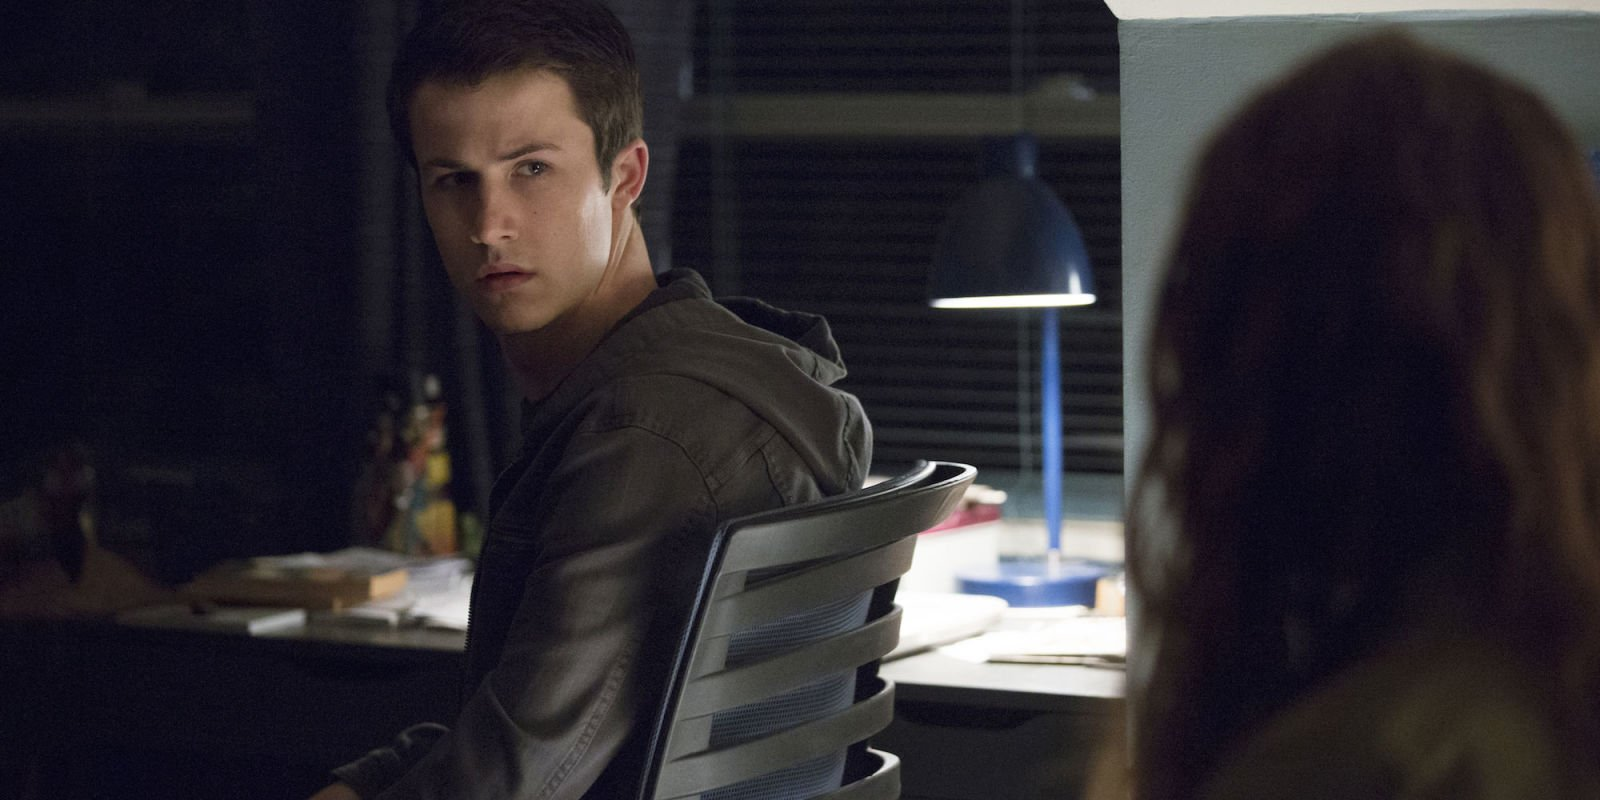 13 Reasons Why season 3: Release date, cast, spoilers and everything you need to know